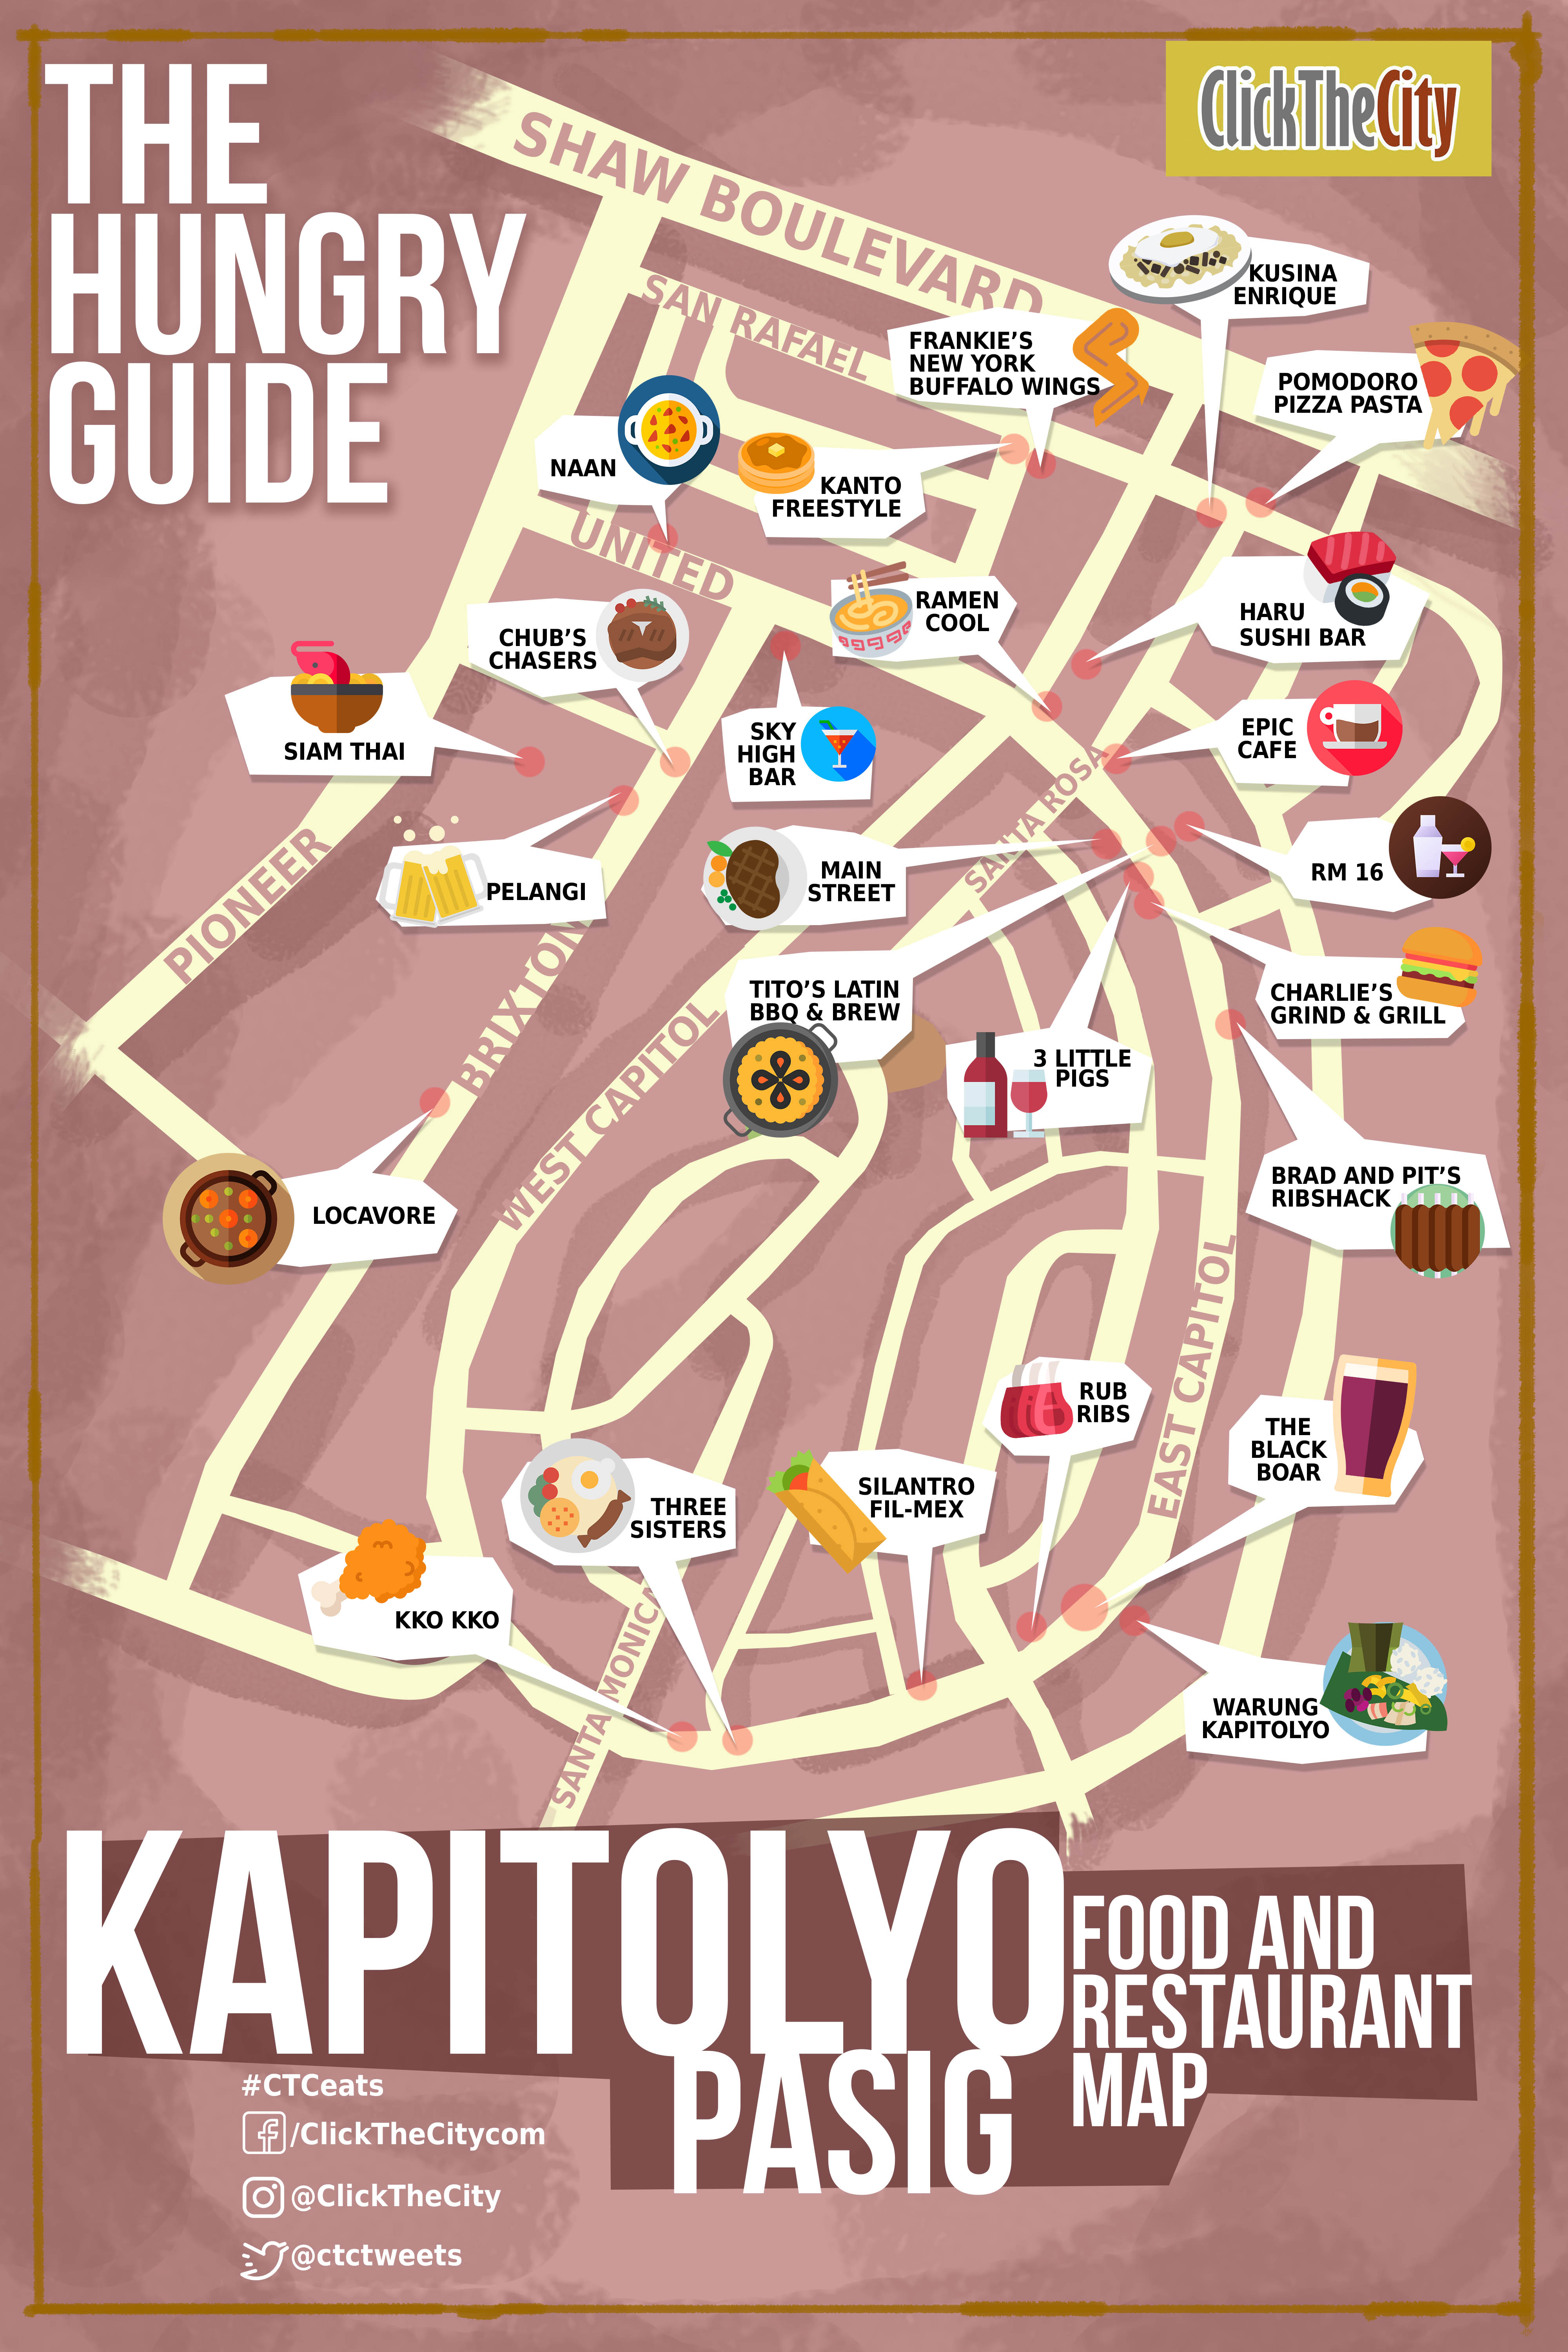 The Hungry Guide Click The City Legazpi Village Makati City